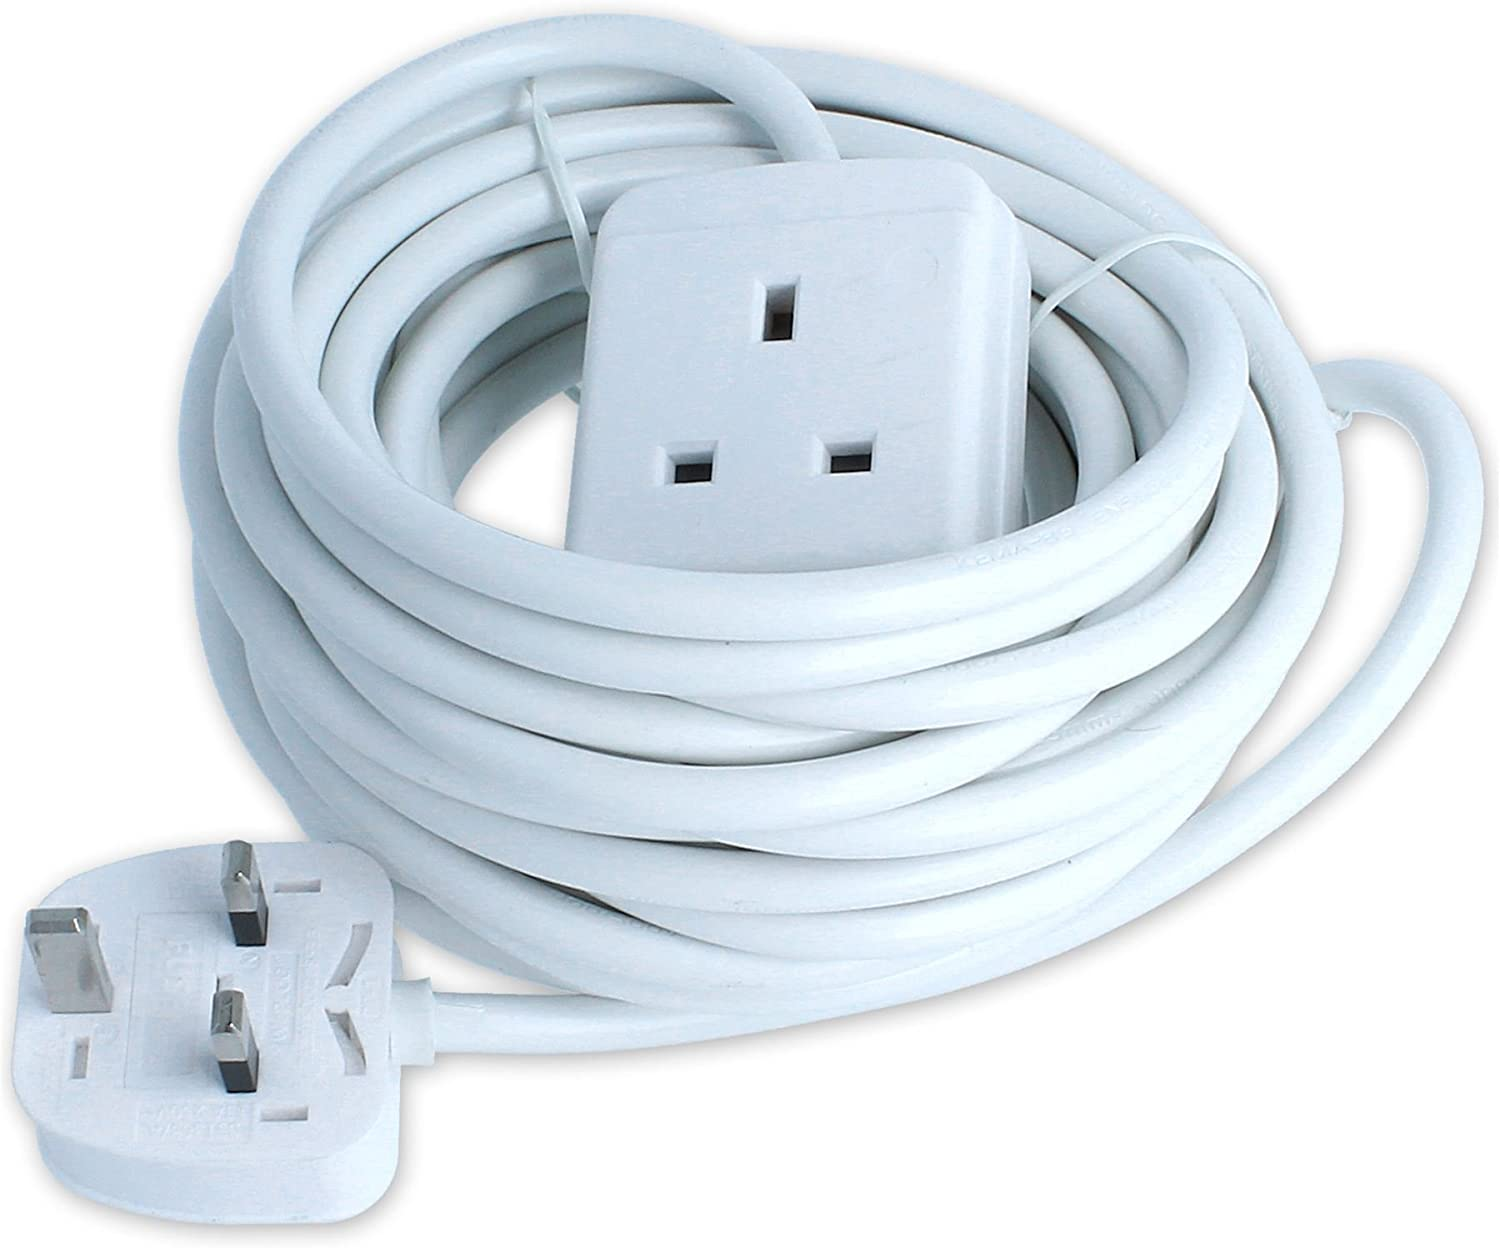 SINGLE GANG 1 GANG EXTENSION LEAD UK PLUG 1 WAY EXTENSION WITH 10M CABLE